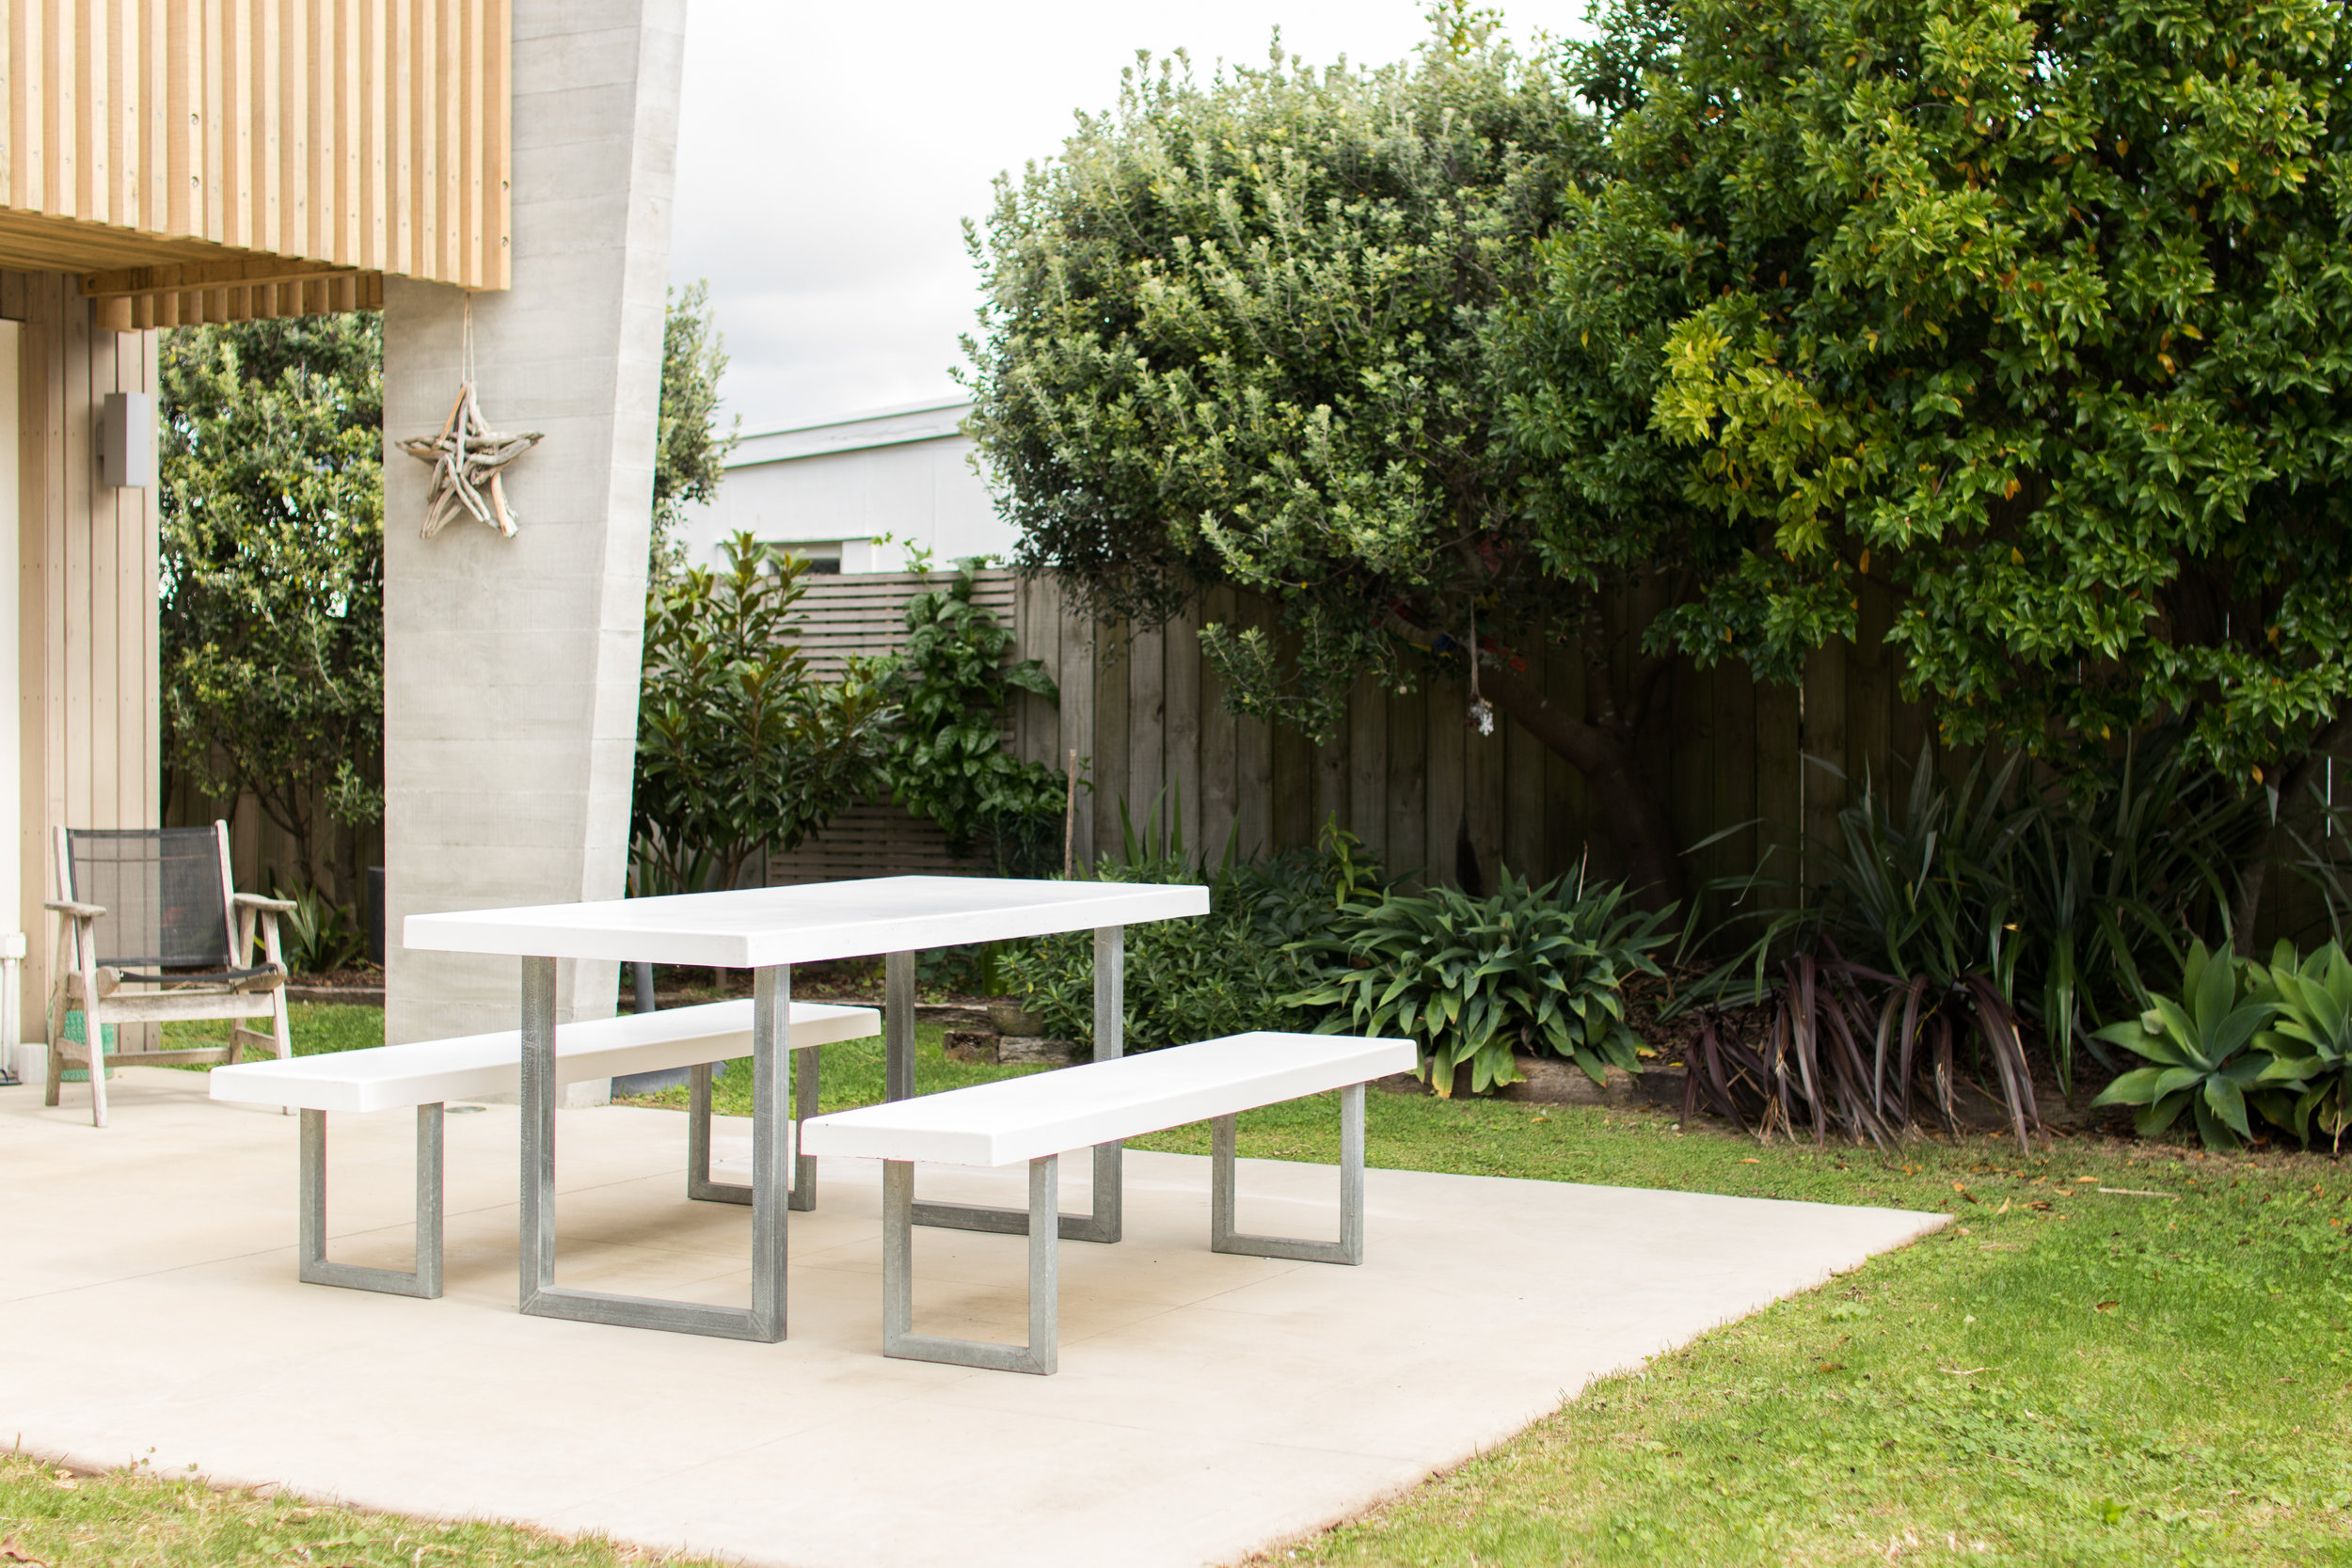 OutdoorTable - Outdoor table & chair arrangement.